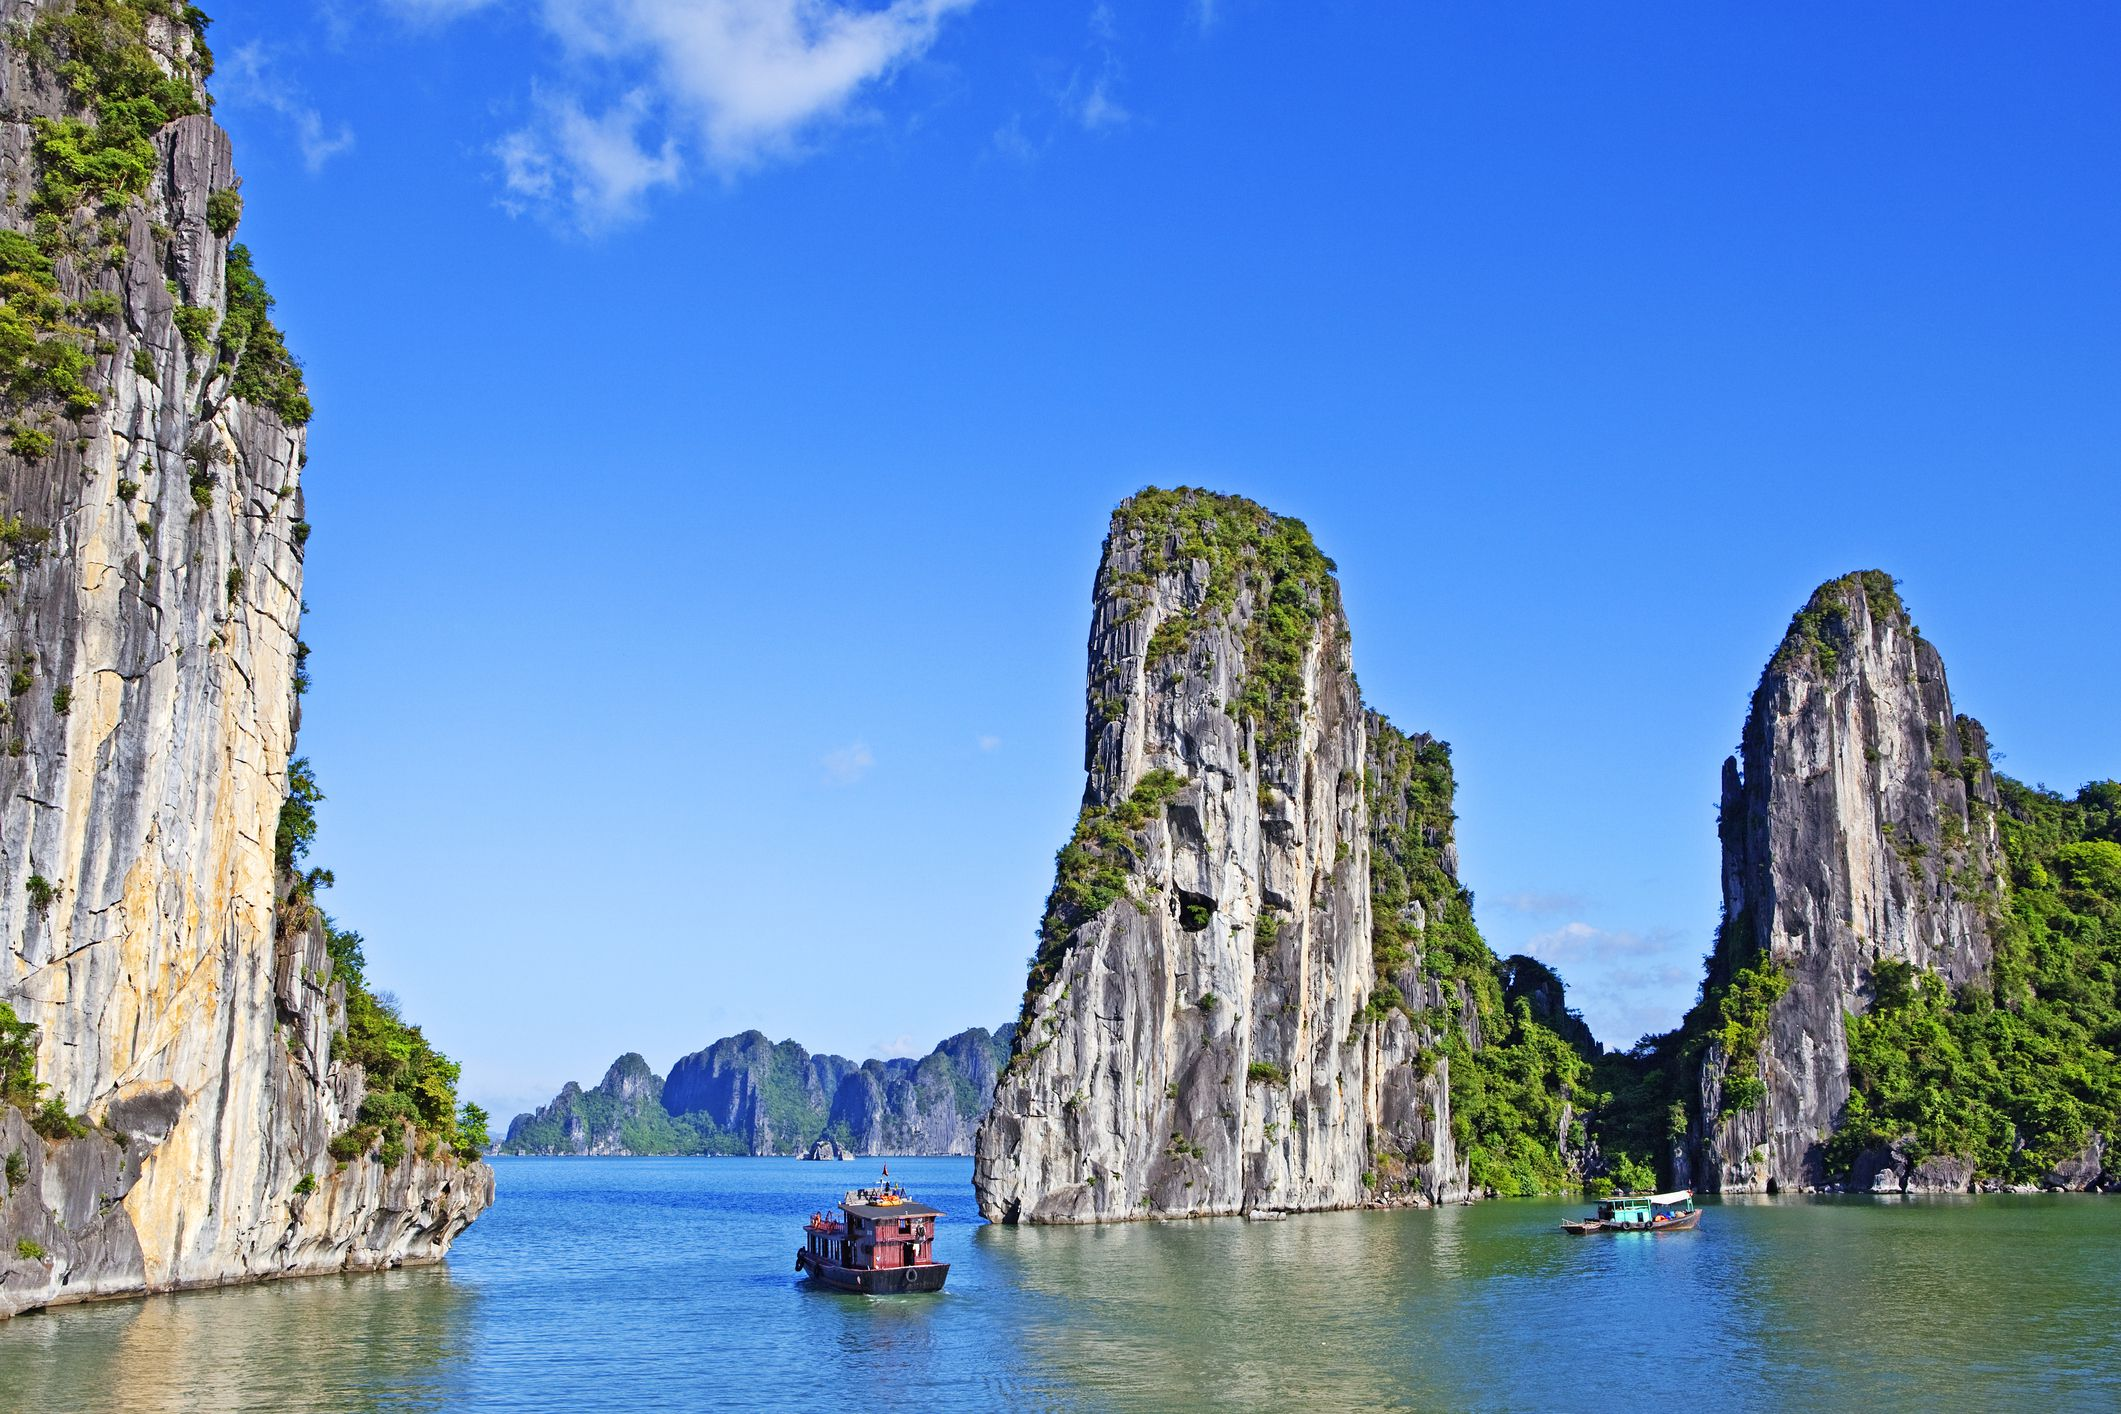 How to Go Direct to Ha Long Bay Without Going Through a Middleman